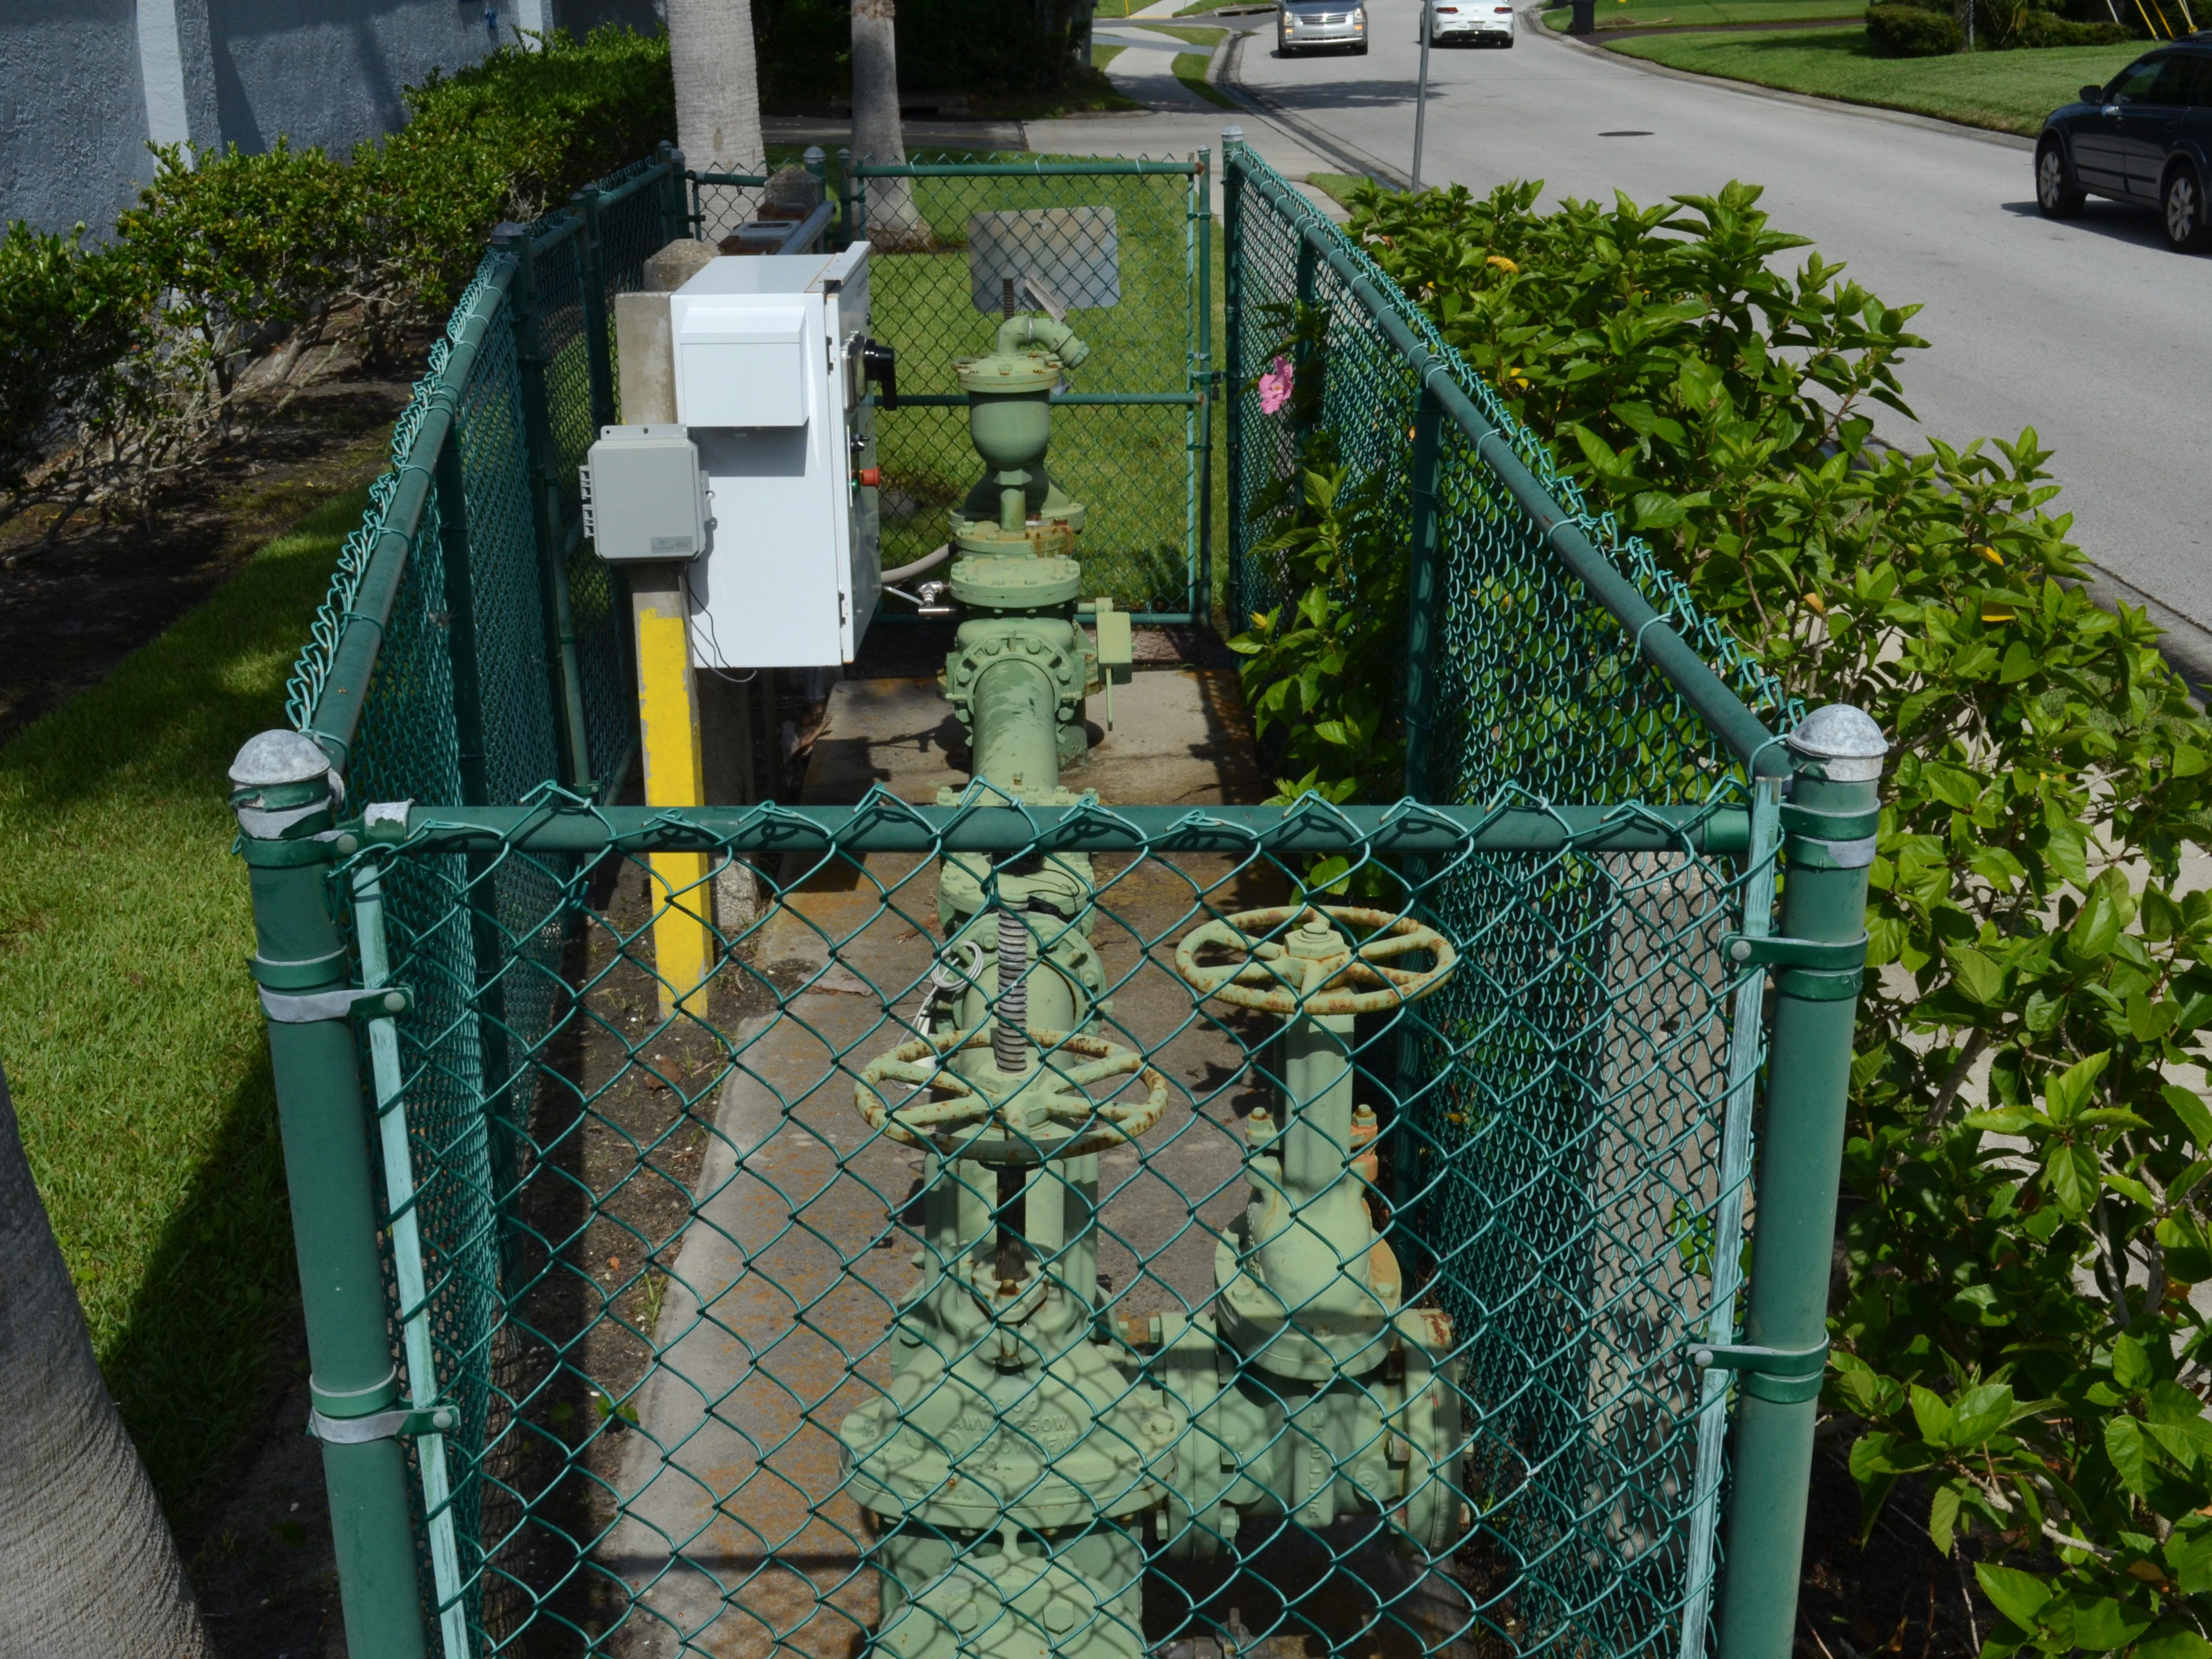 A green raw water well pump inside of a fenced area.